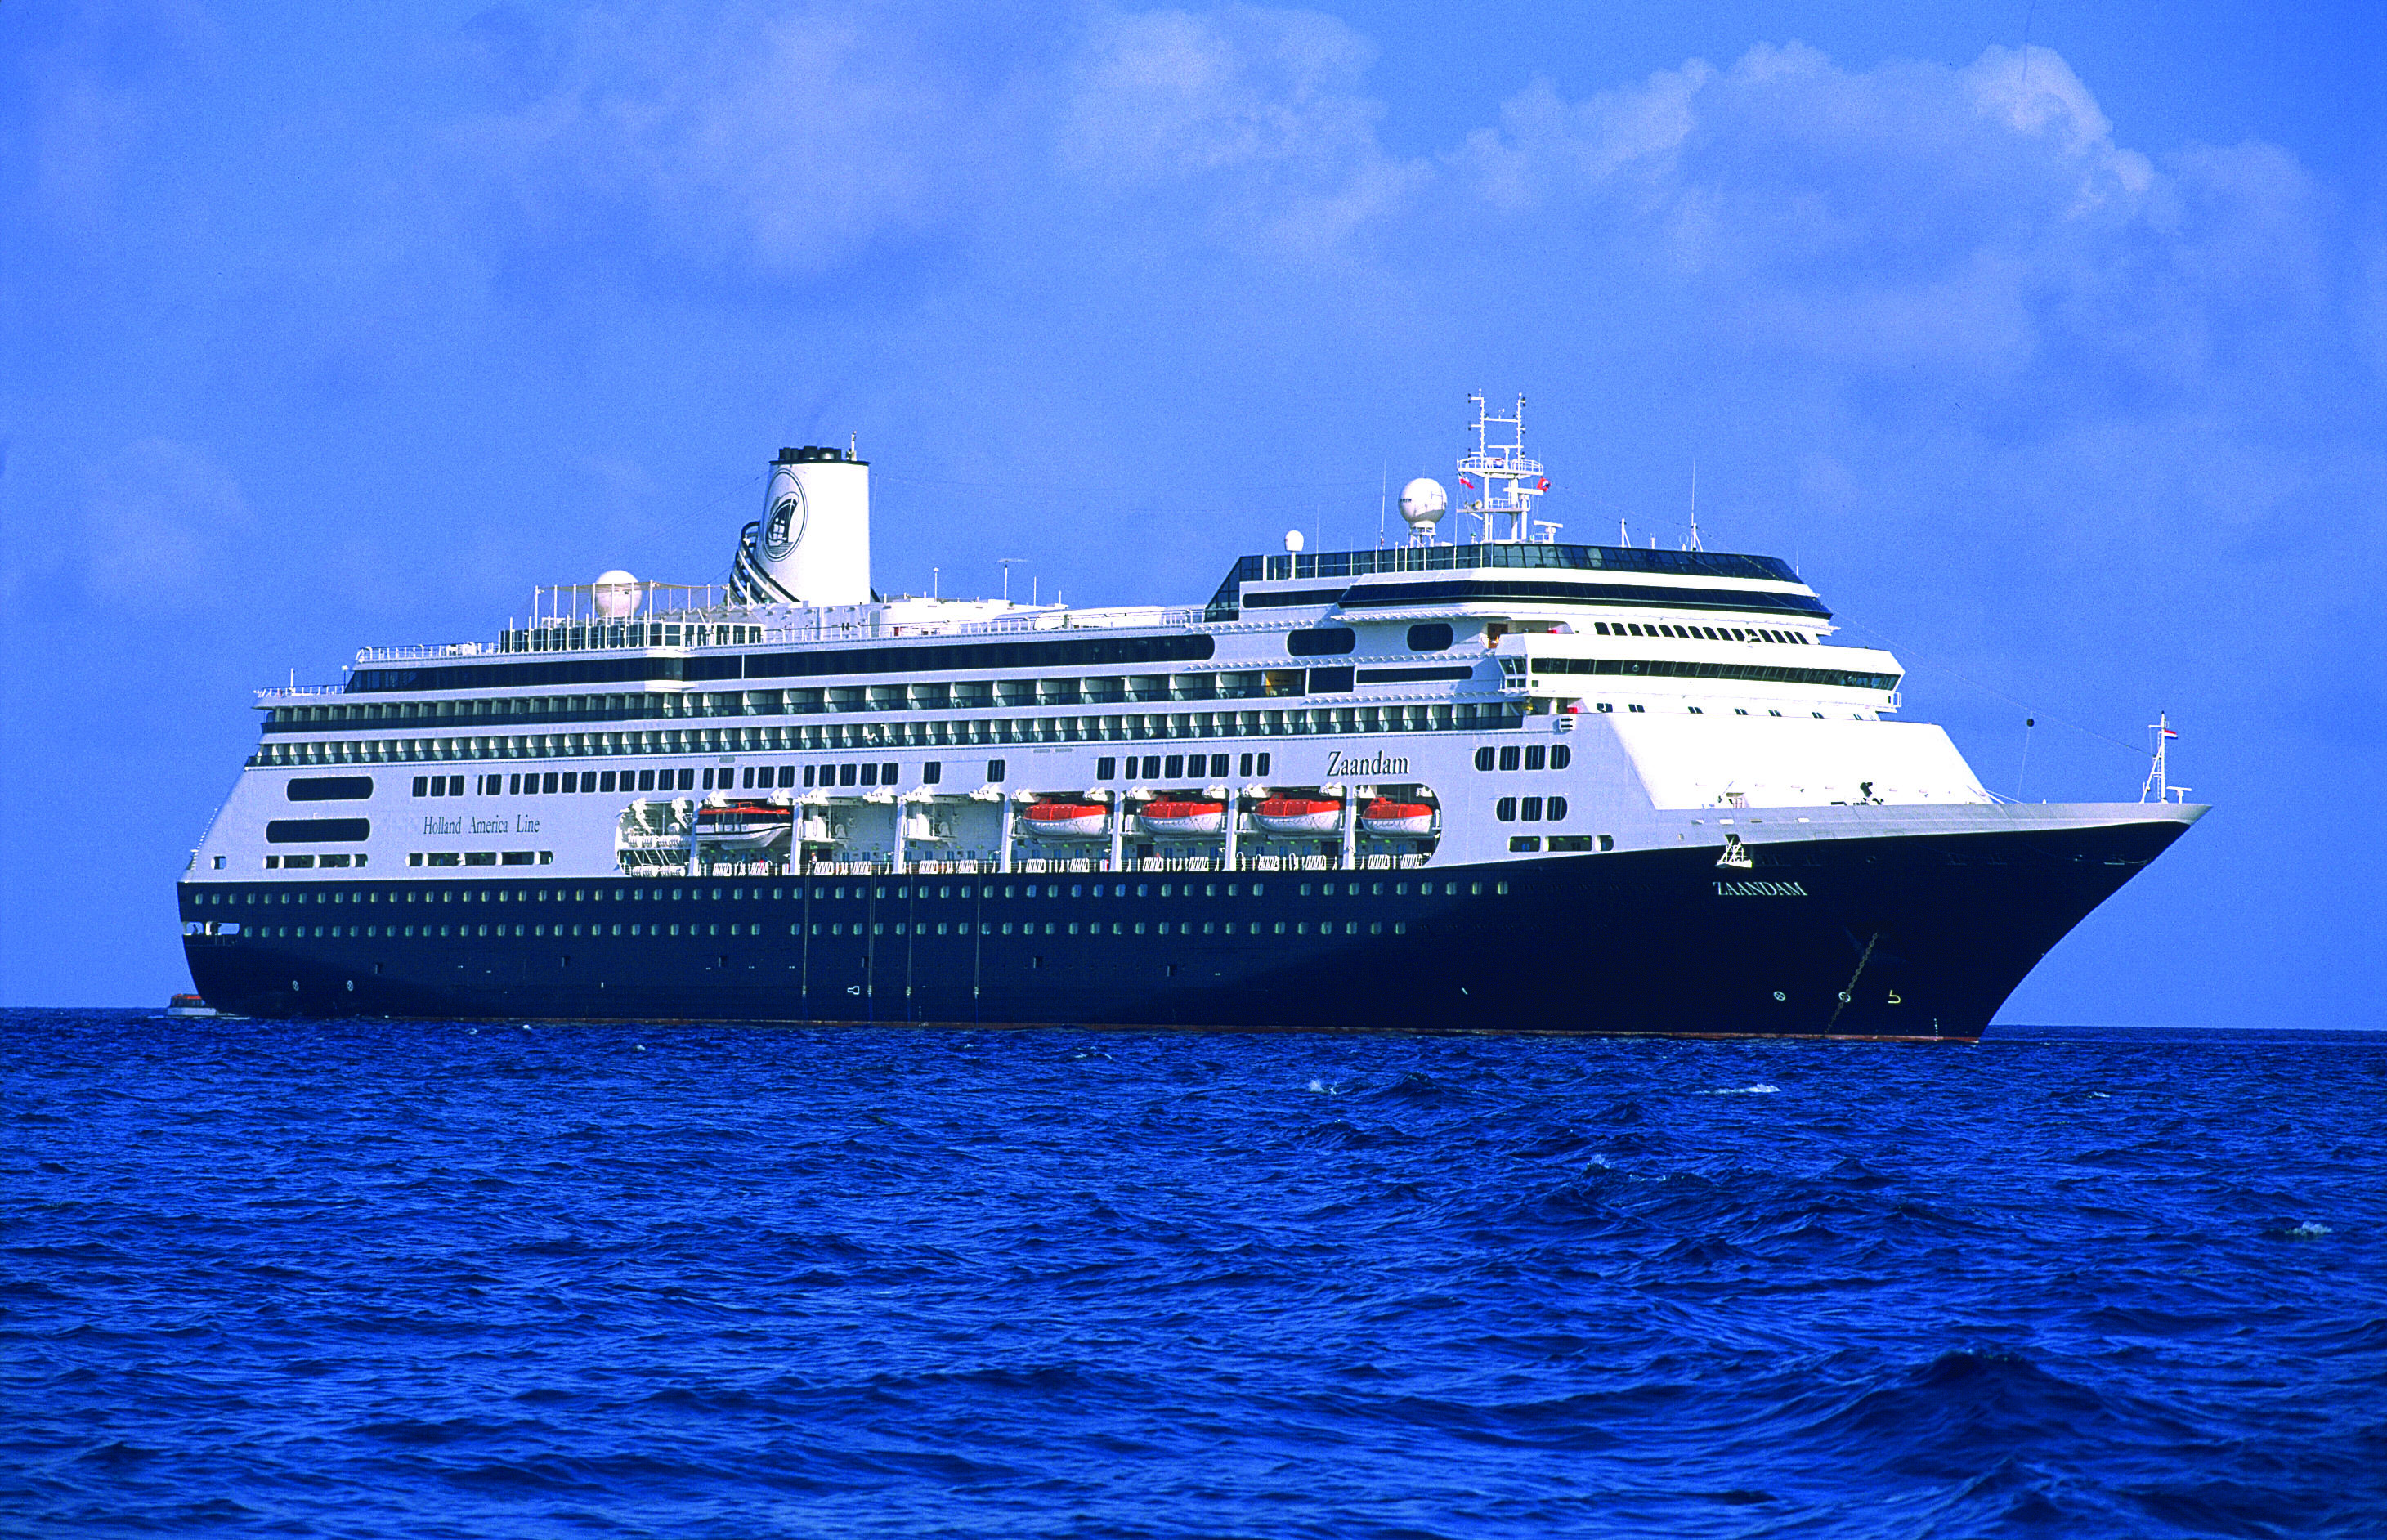 Holland America Zaandam Cruise Ship Reviews UPDATED - Guest entertainers wanted for cruise ships